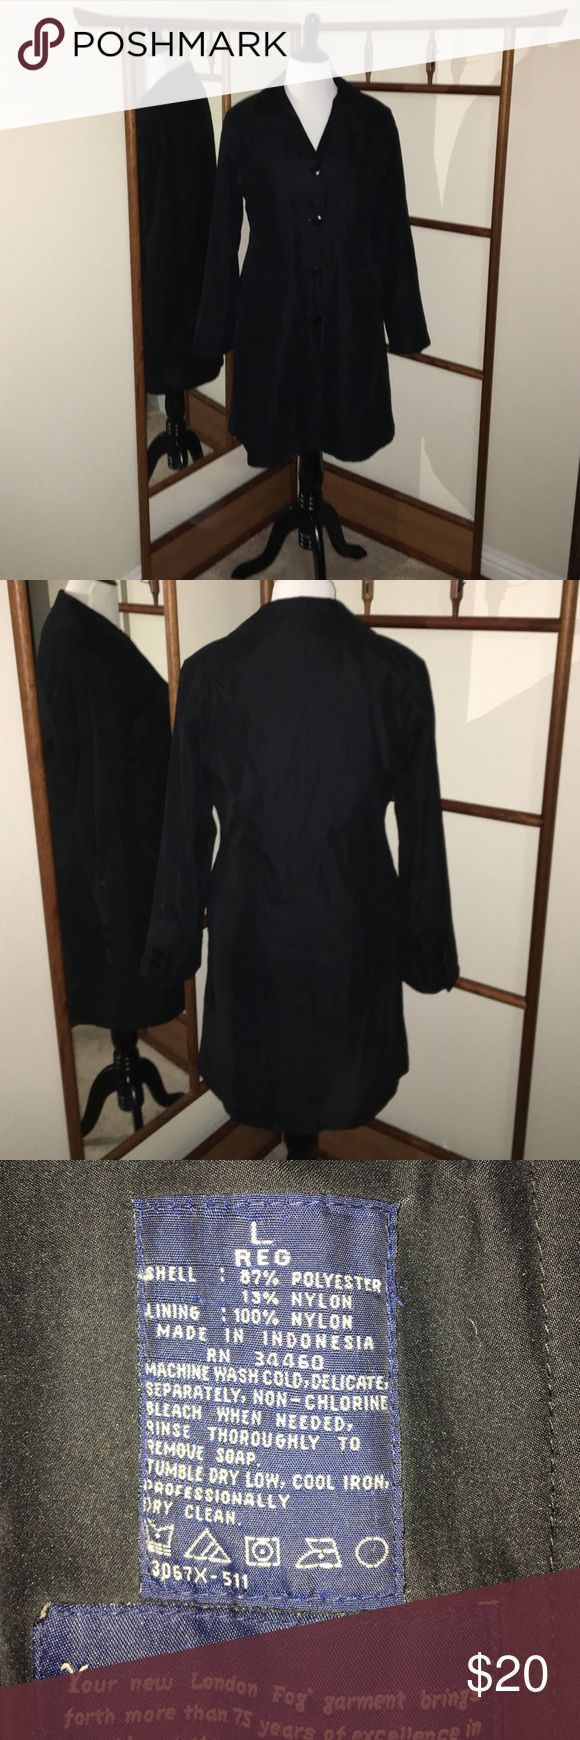 London Fog Black Sz L Water Resistant Coat Black Sz L,  London Fog Car Length Coat with zip out liner.  Great all year coat.  💋No trades or transactions on other sites💋Please use the Offer Button💋Happy Poshing💋 London Fog Jackets & Coats Trench Coats